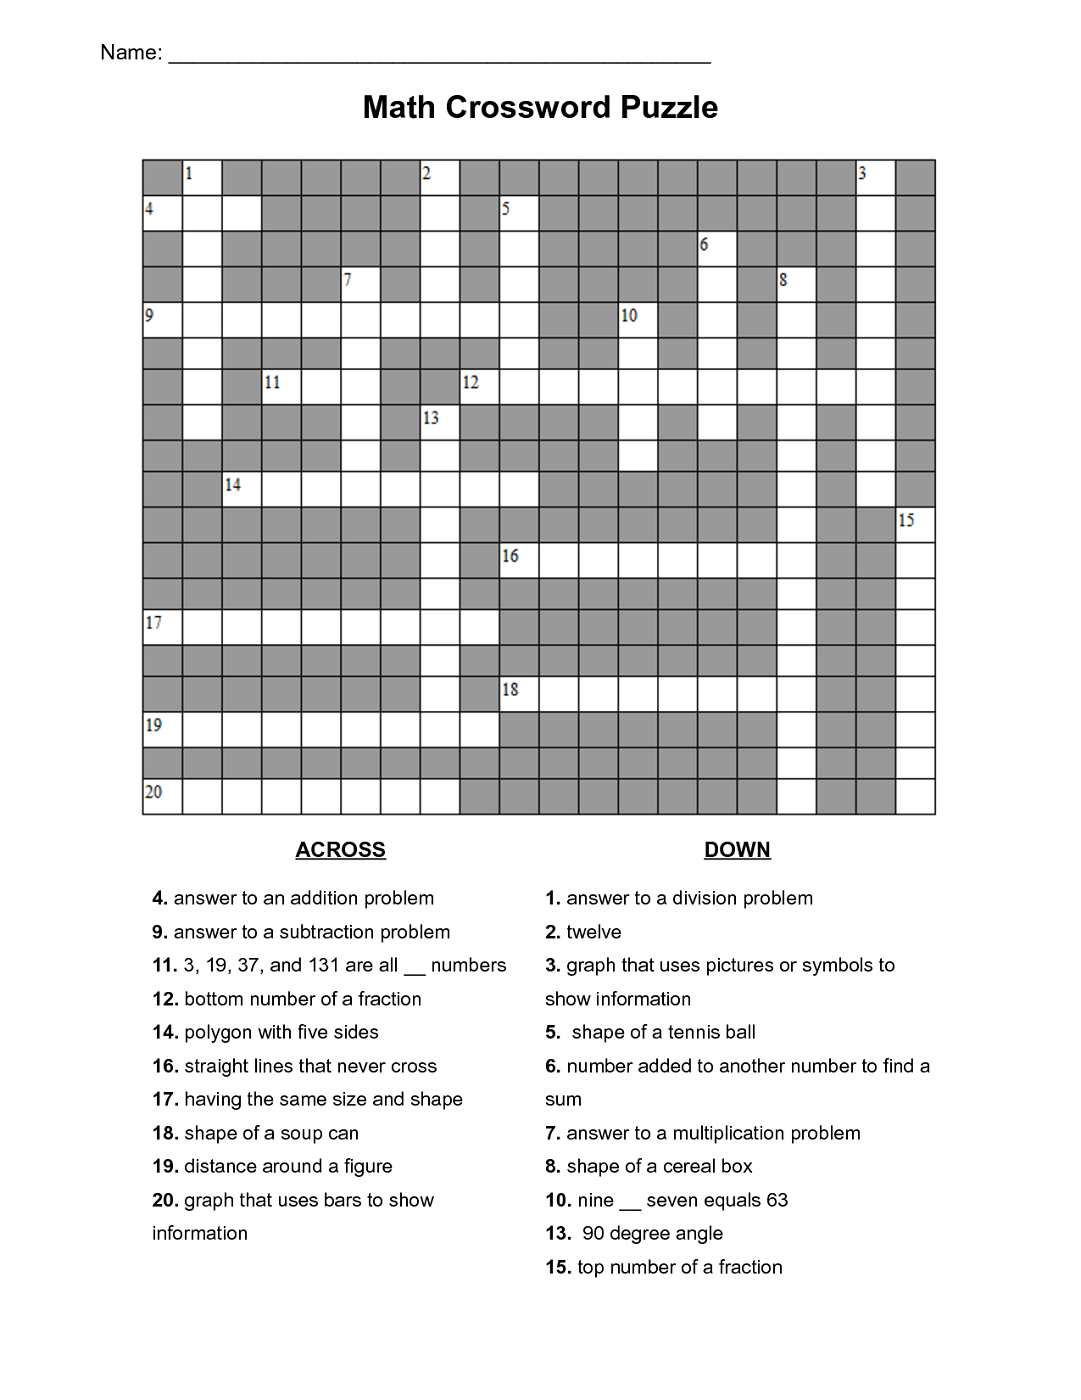 Math Puzzles For Kids | Educative Puzzle For Kids | Maths Puzzles - Math Crossword Puzzles Printable